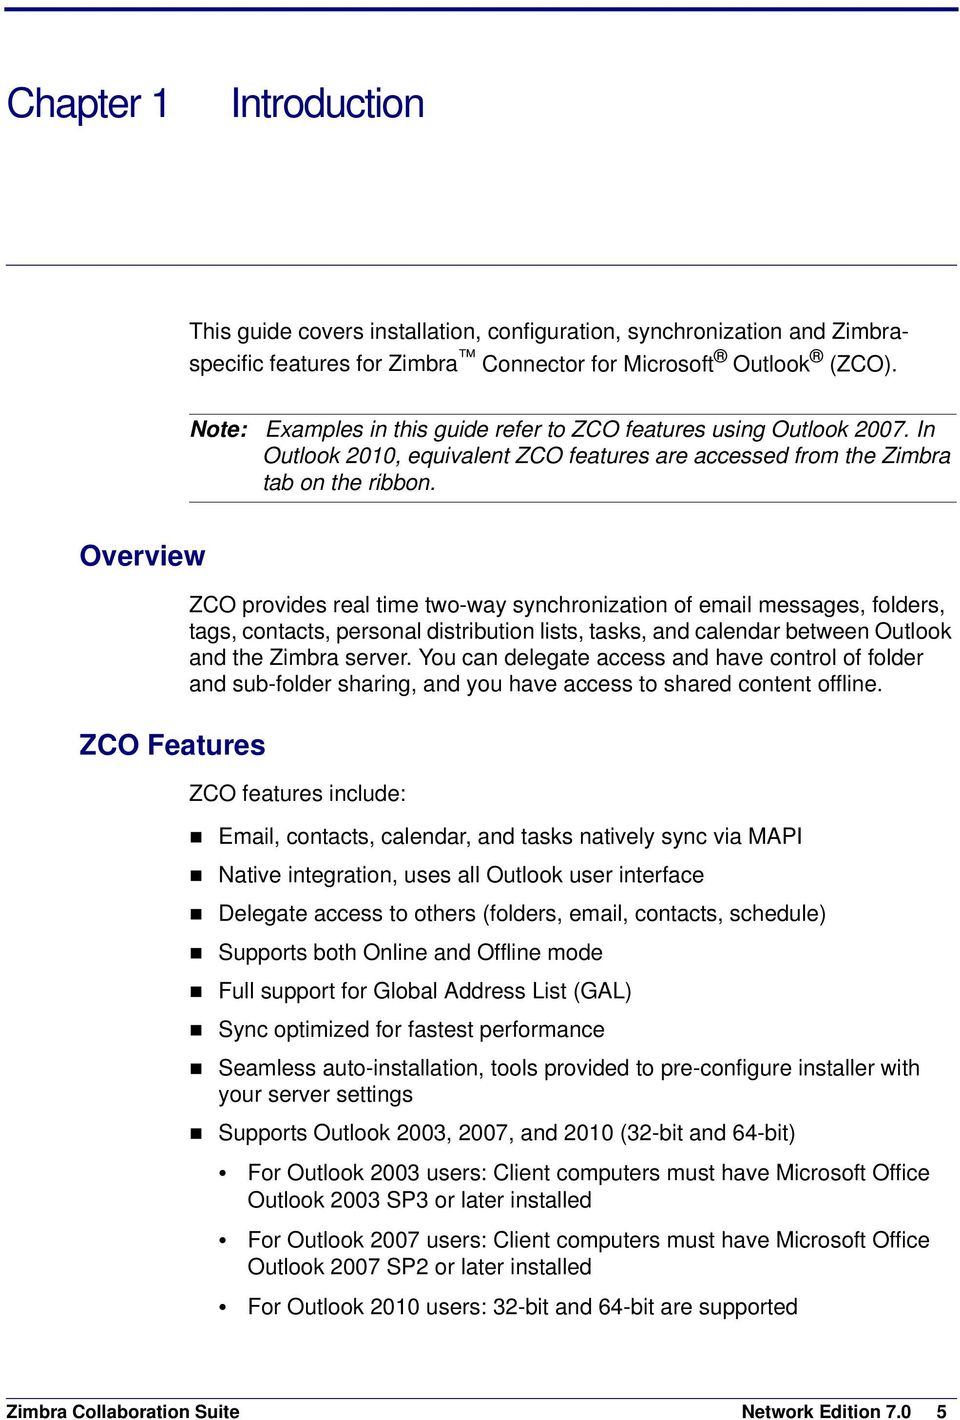 Overview ZCO Features ZCO provides real time two-way synchronization of email messages, folders, tags, contacts, personal distribution lists, tasks, and calendar between Outlook and the Zimbra server.